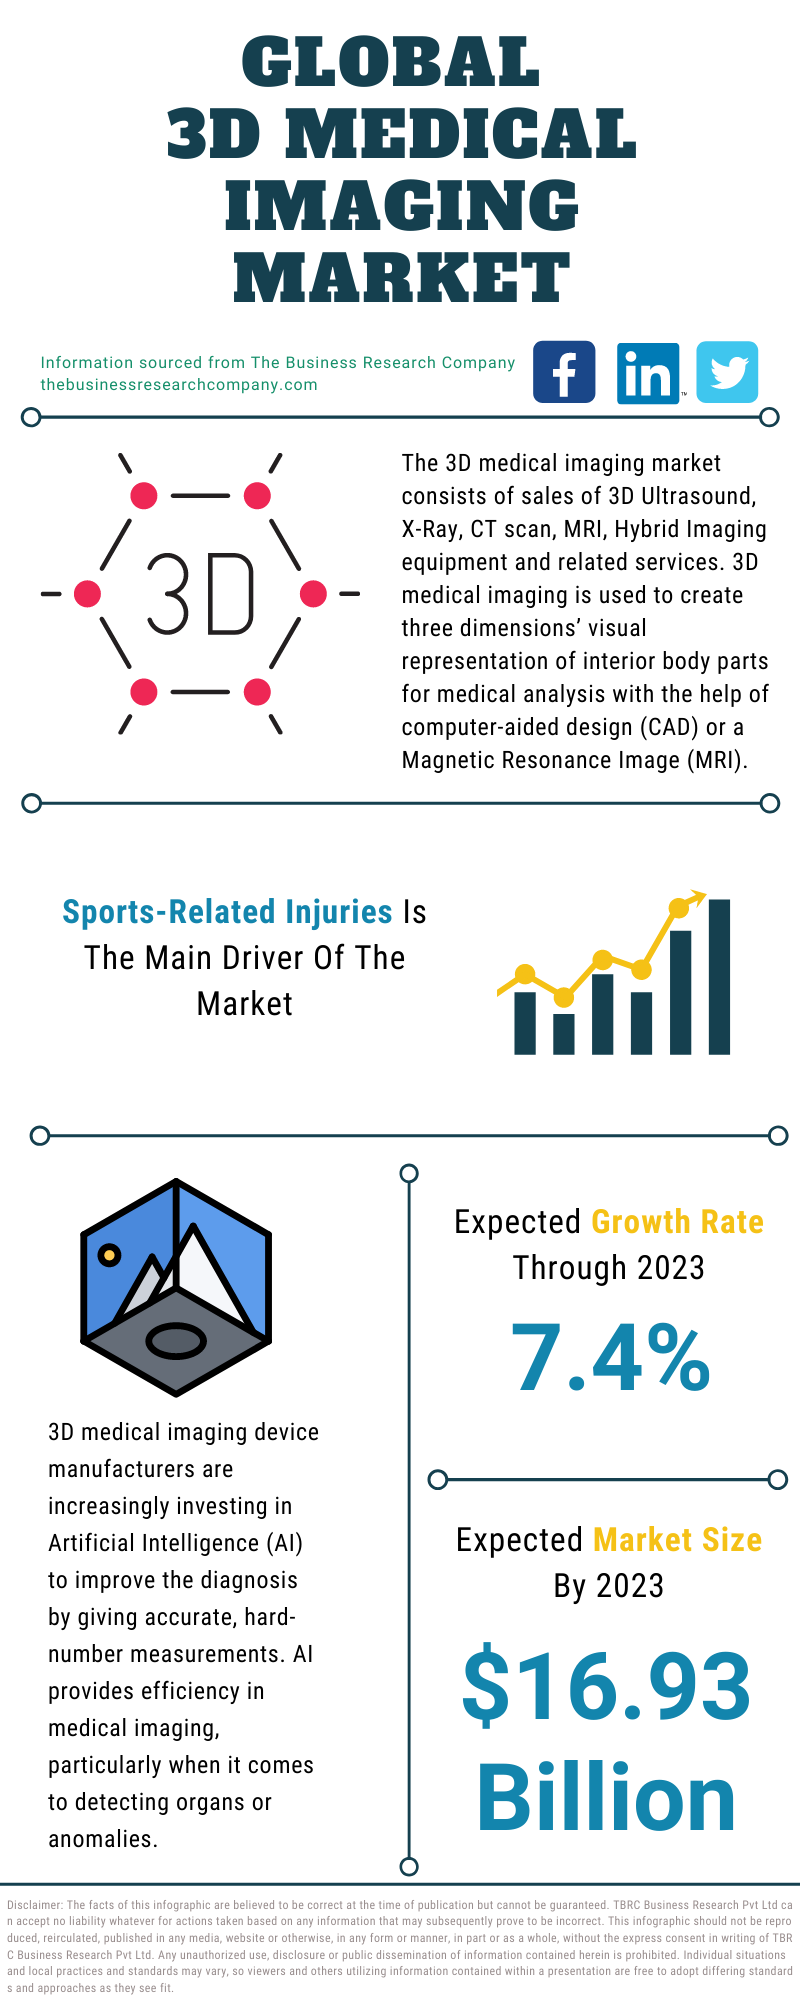 3D Medical Imaging Market